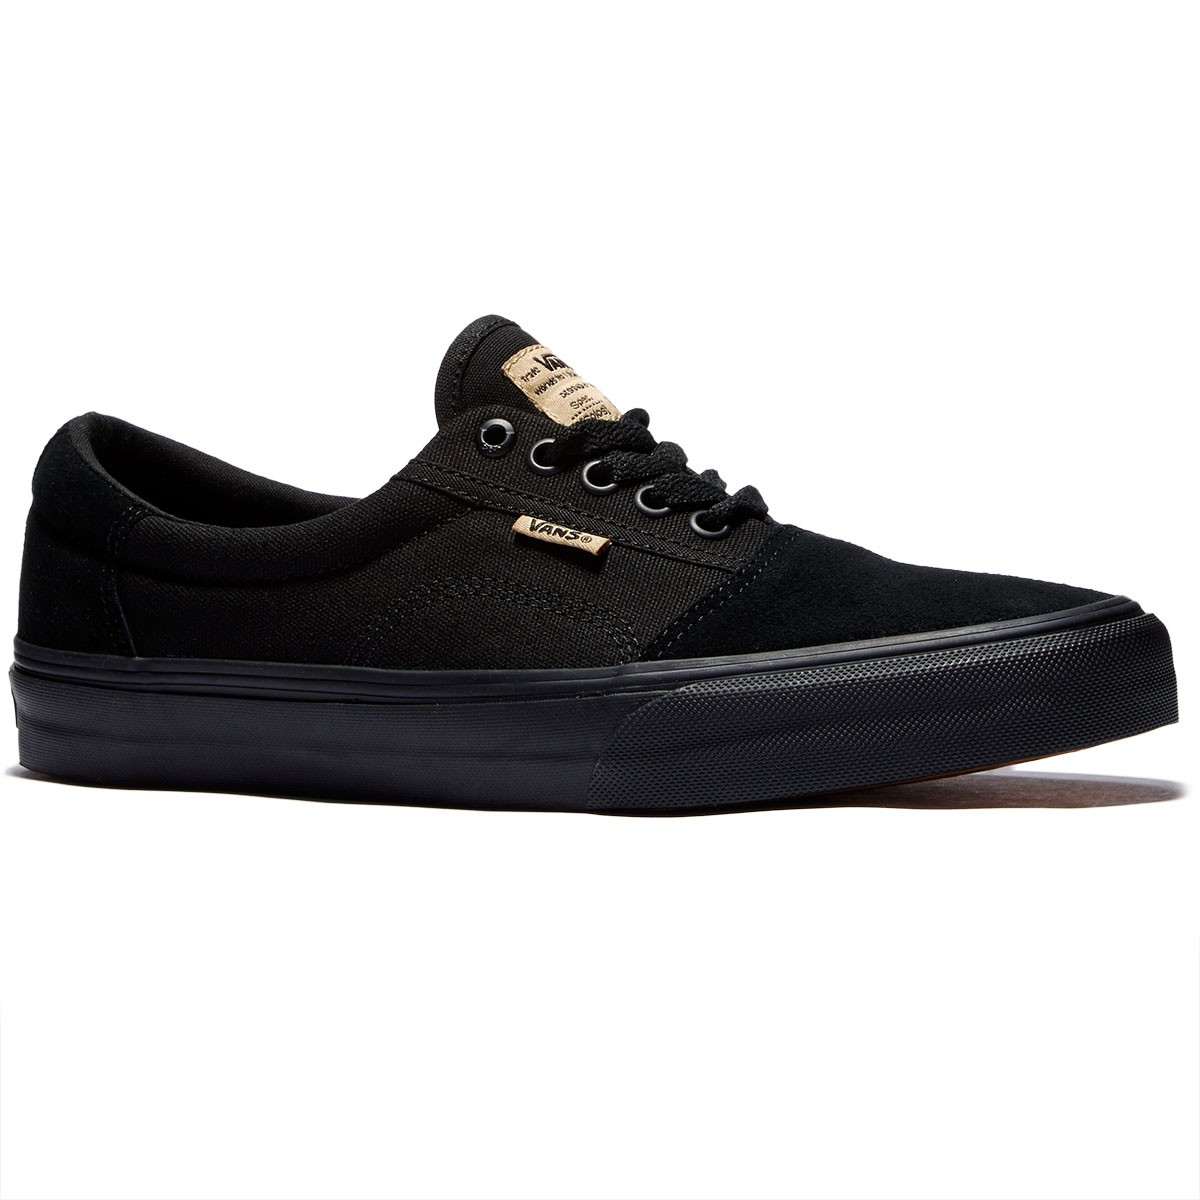 689f6ea4a3 Vans Rowley Solos Shoes - Black Black - 8.0